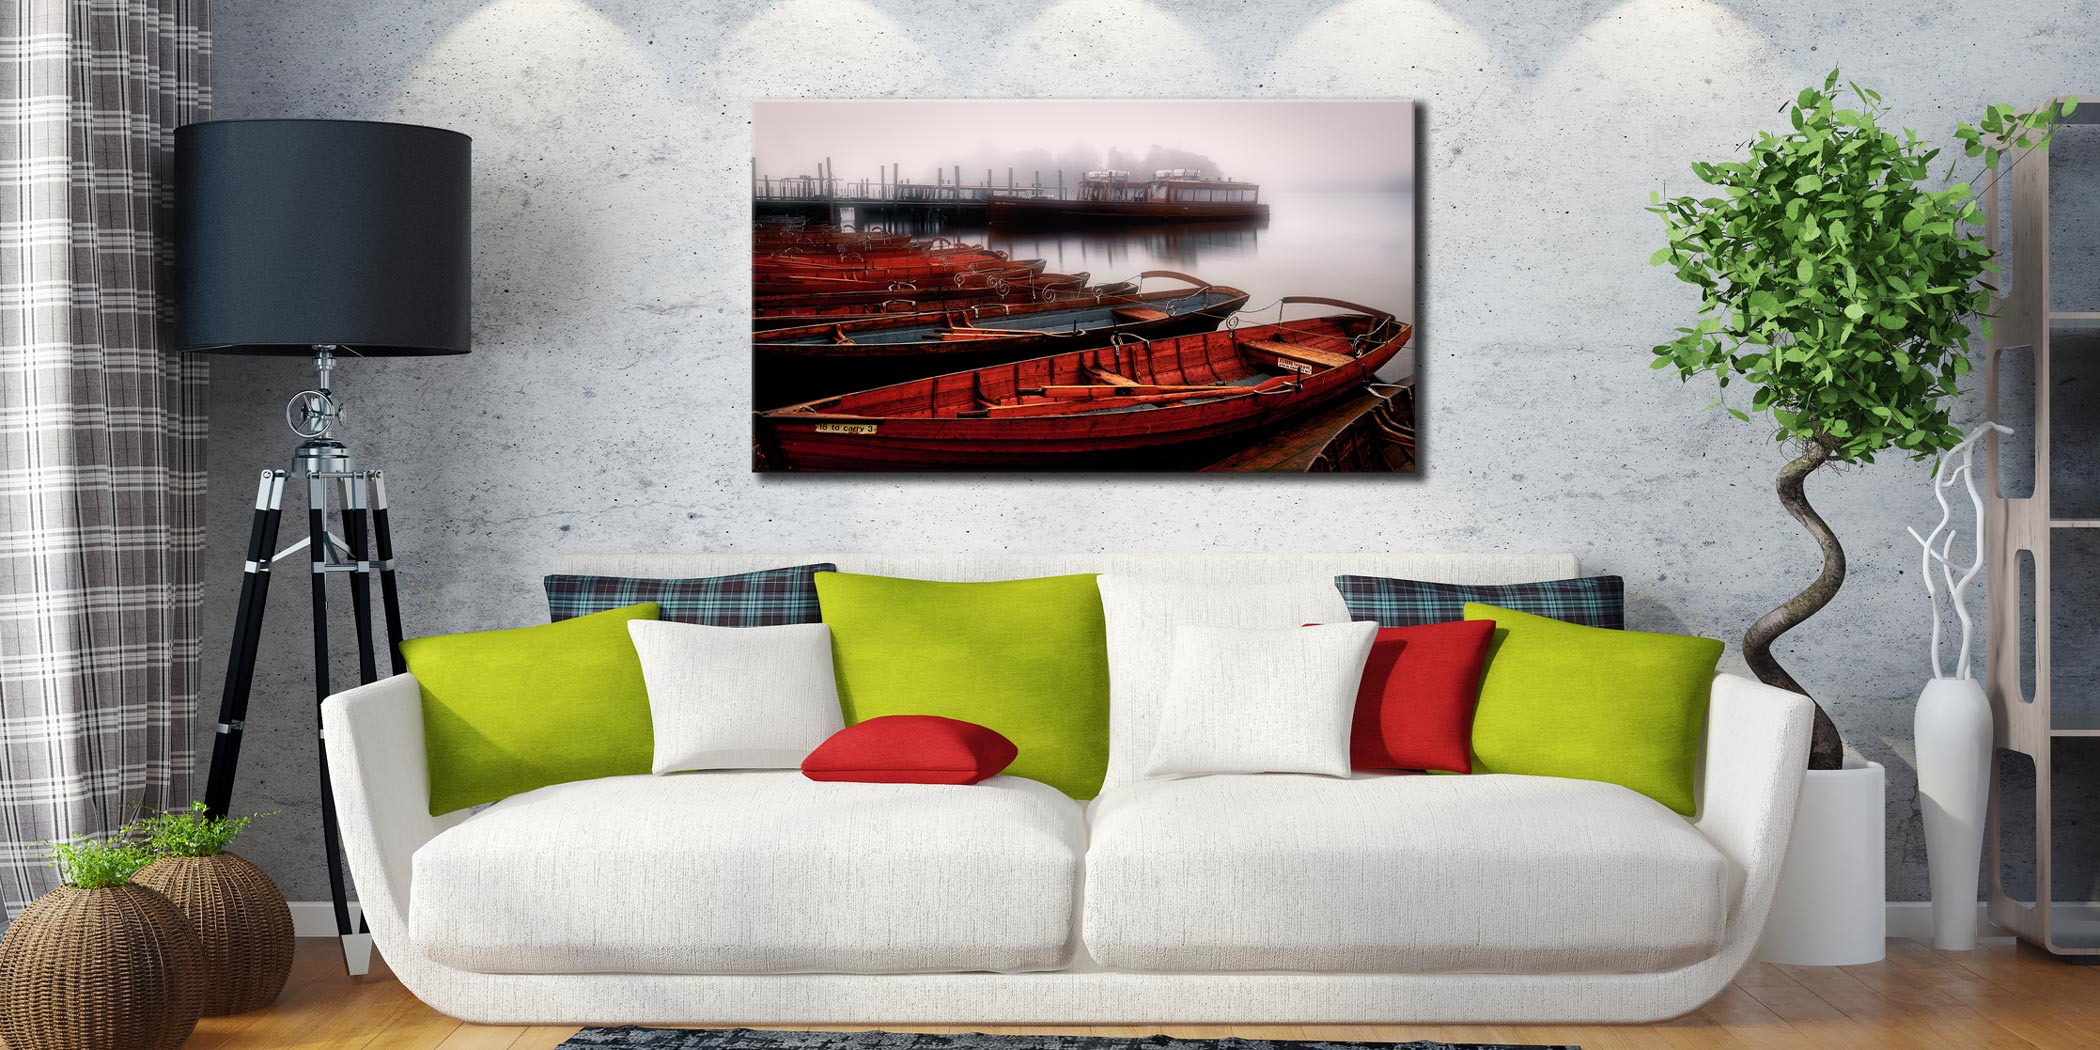 Red Boats in the Mist - Canvas Print on Wall